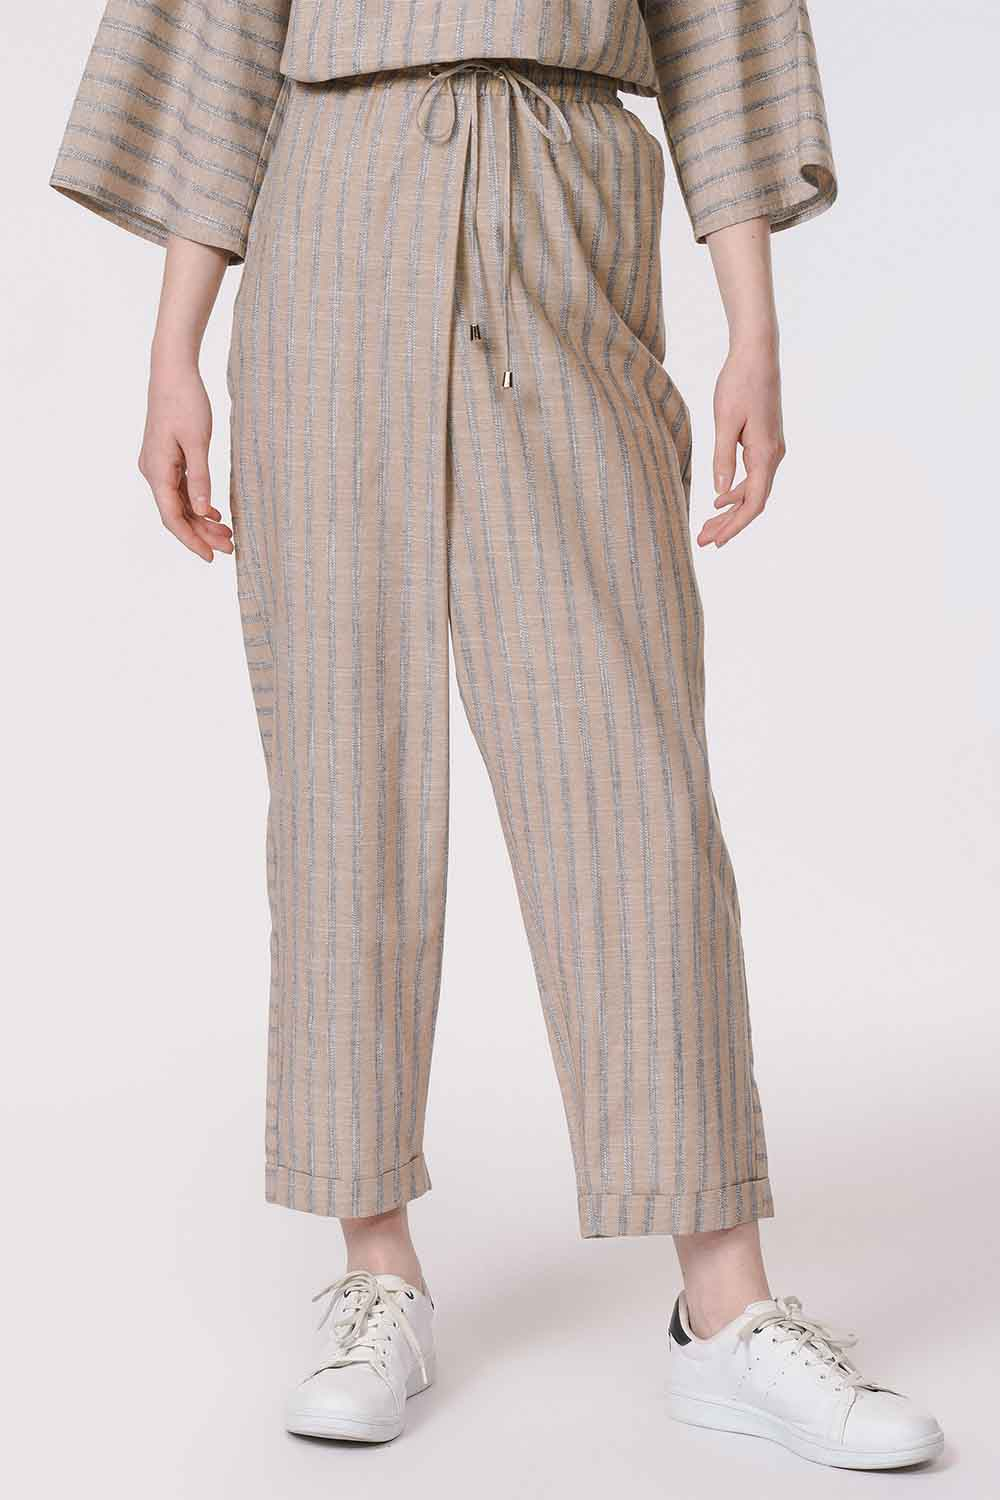 MIZALLE Striped Piece Trousers (Beige) (1)